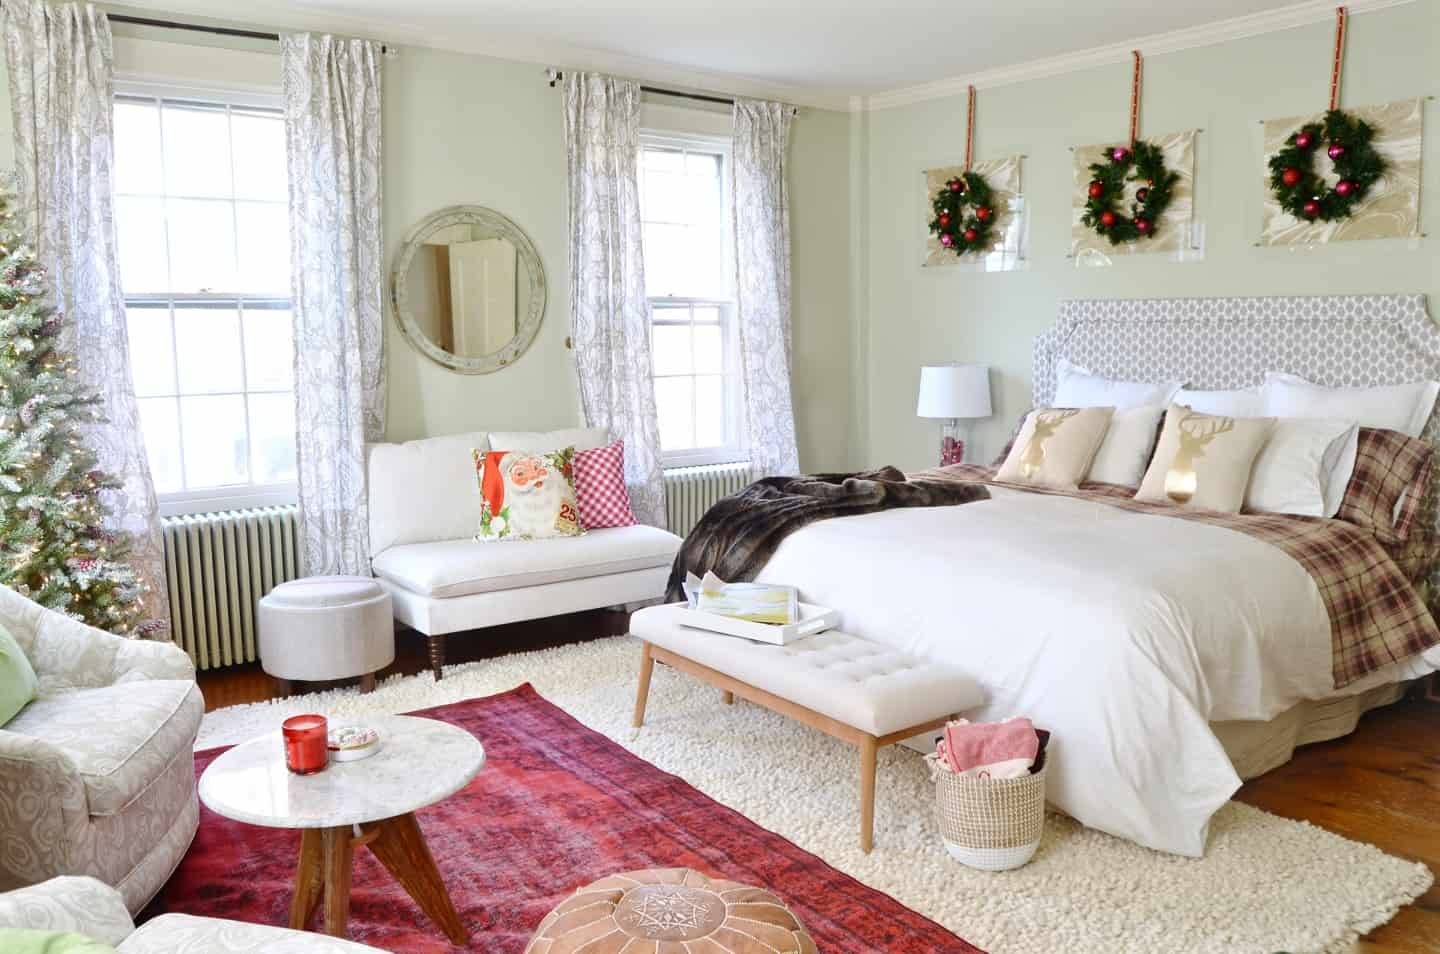 New England holiday house tour with lots of Christmas trees and classic red accents.